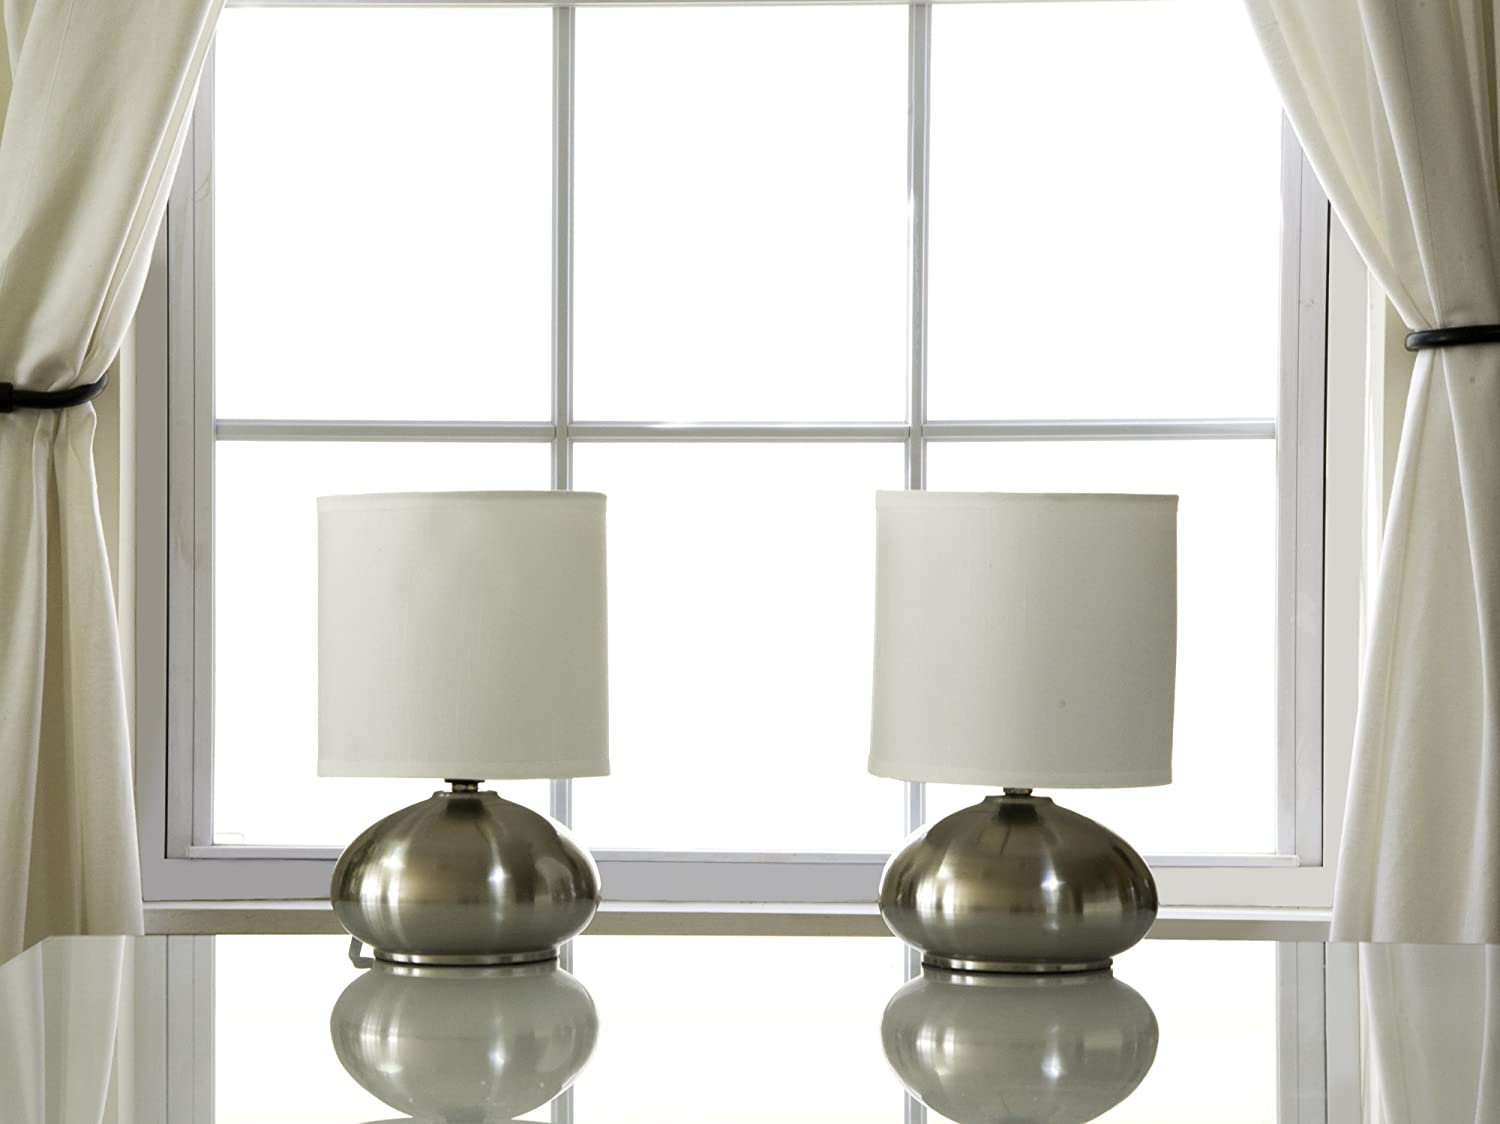 Light Accents Touch Lamps Set of 2, Bedroom Side Table Lamps Brushed ...